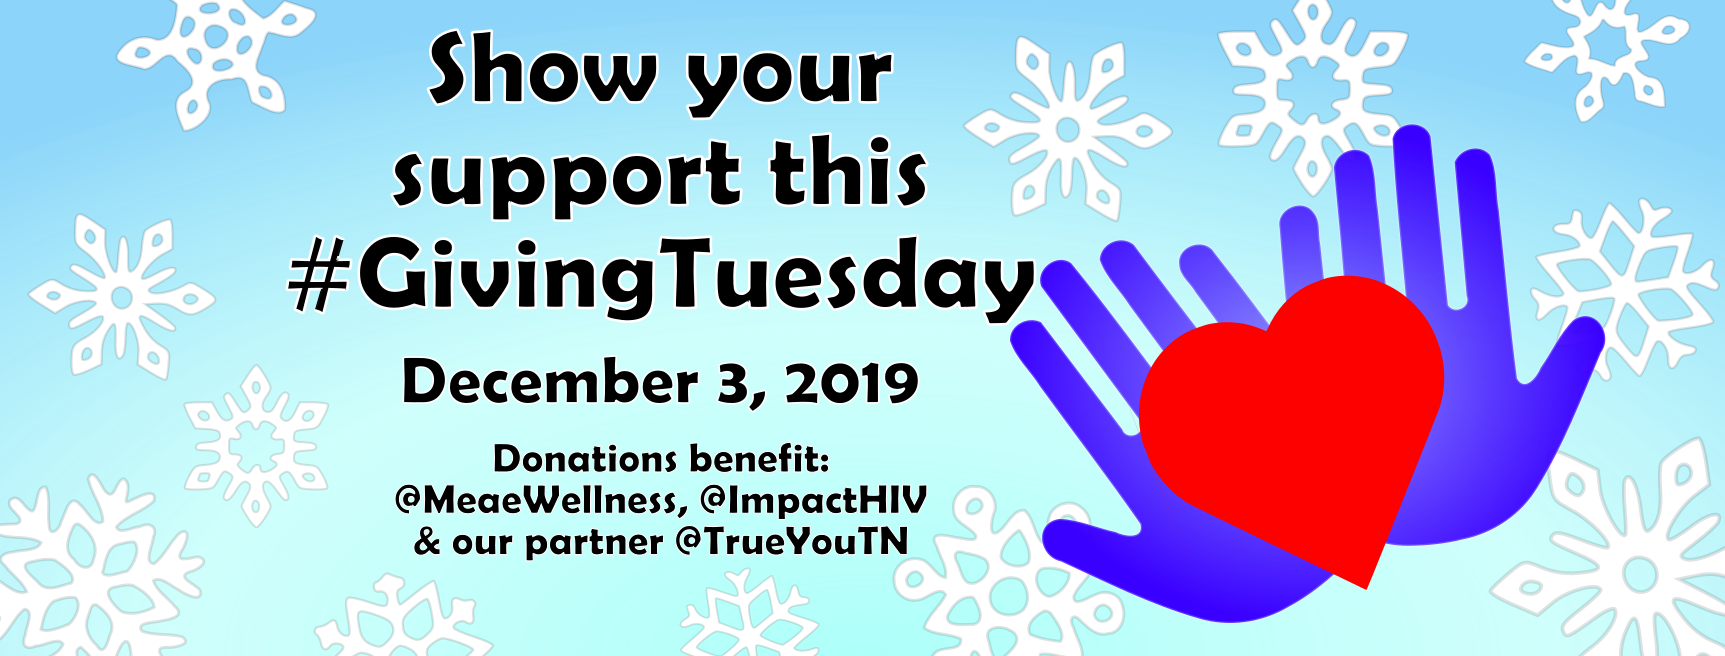 Show your support this #GivingTuesday. Donations support @MeaeWellness, @ImpactHIV, and our partner @TrueYouTN.